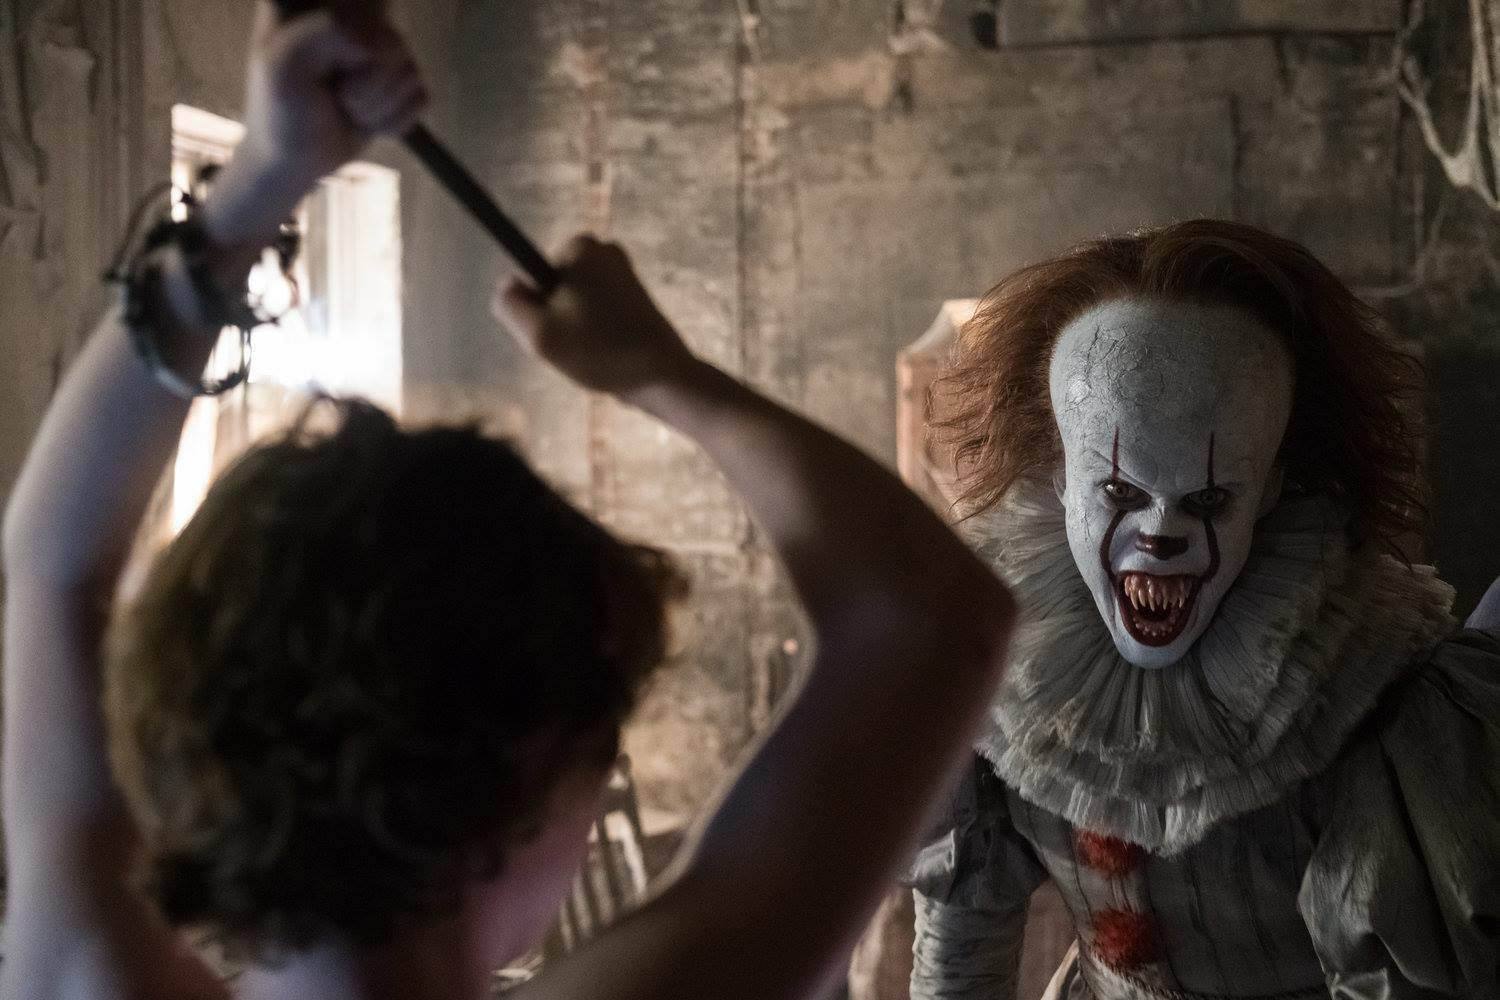 Original Pennywise Makeup Artist Shares Thoughts On New